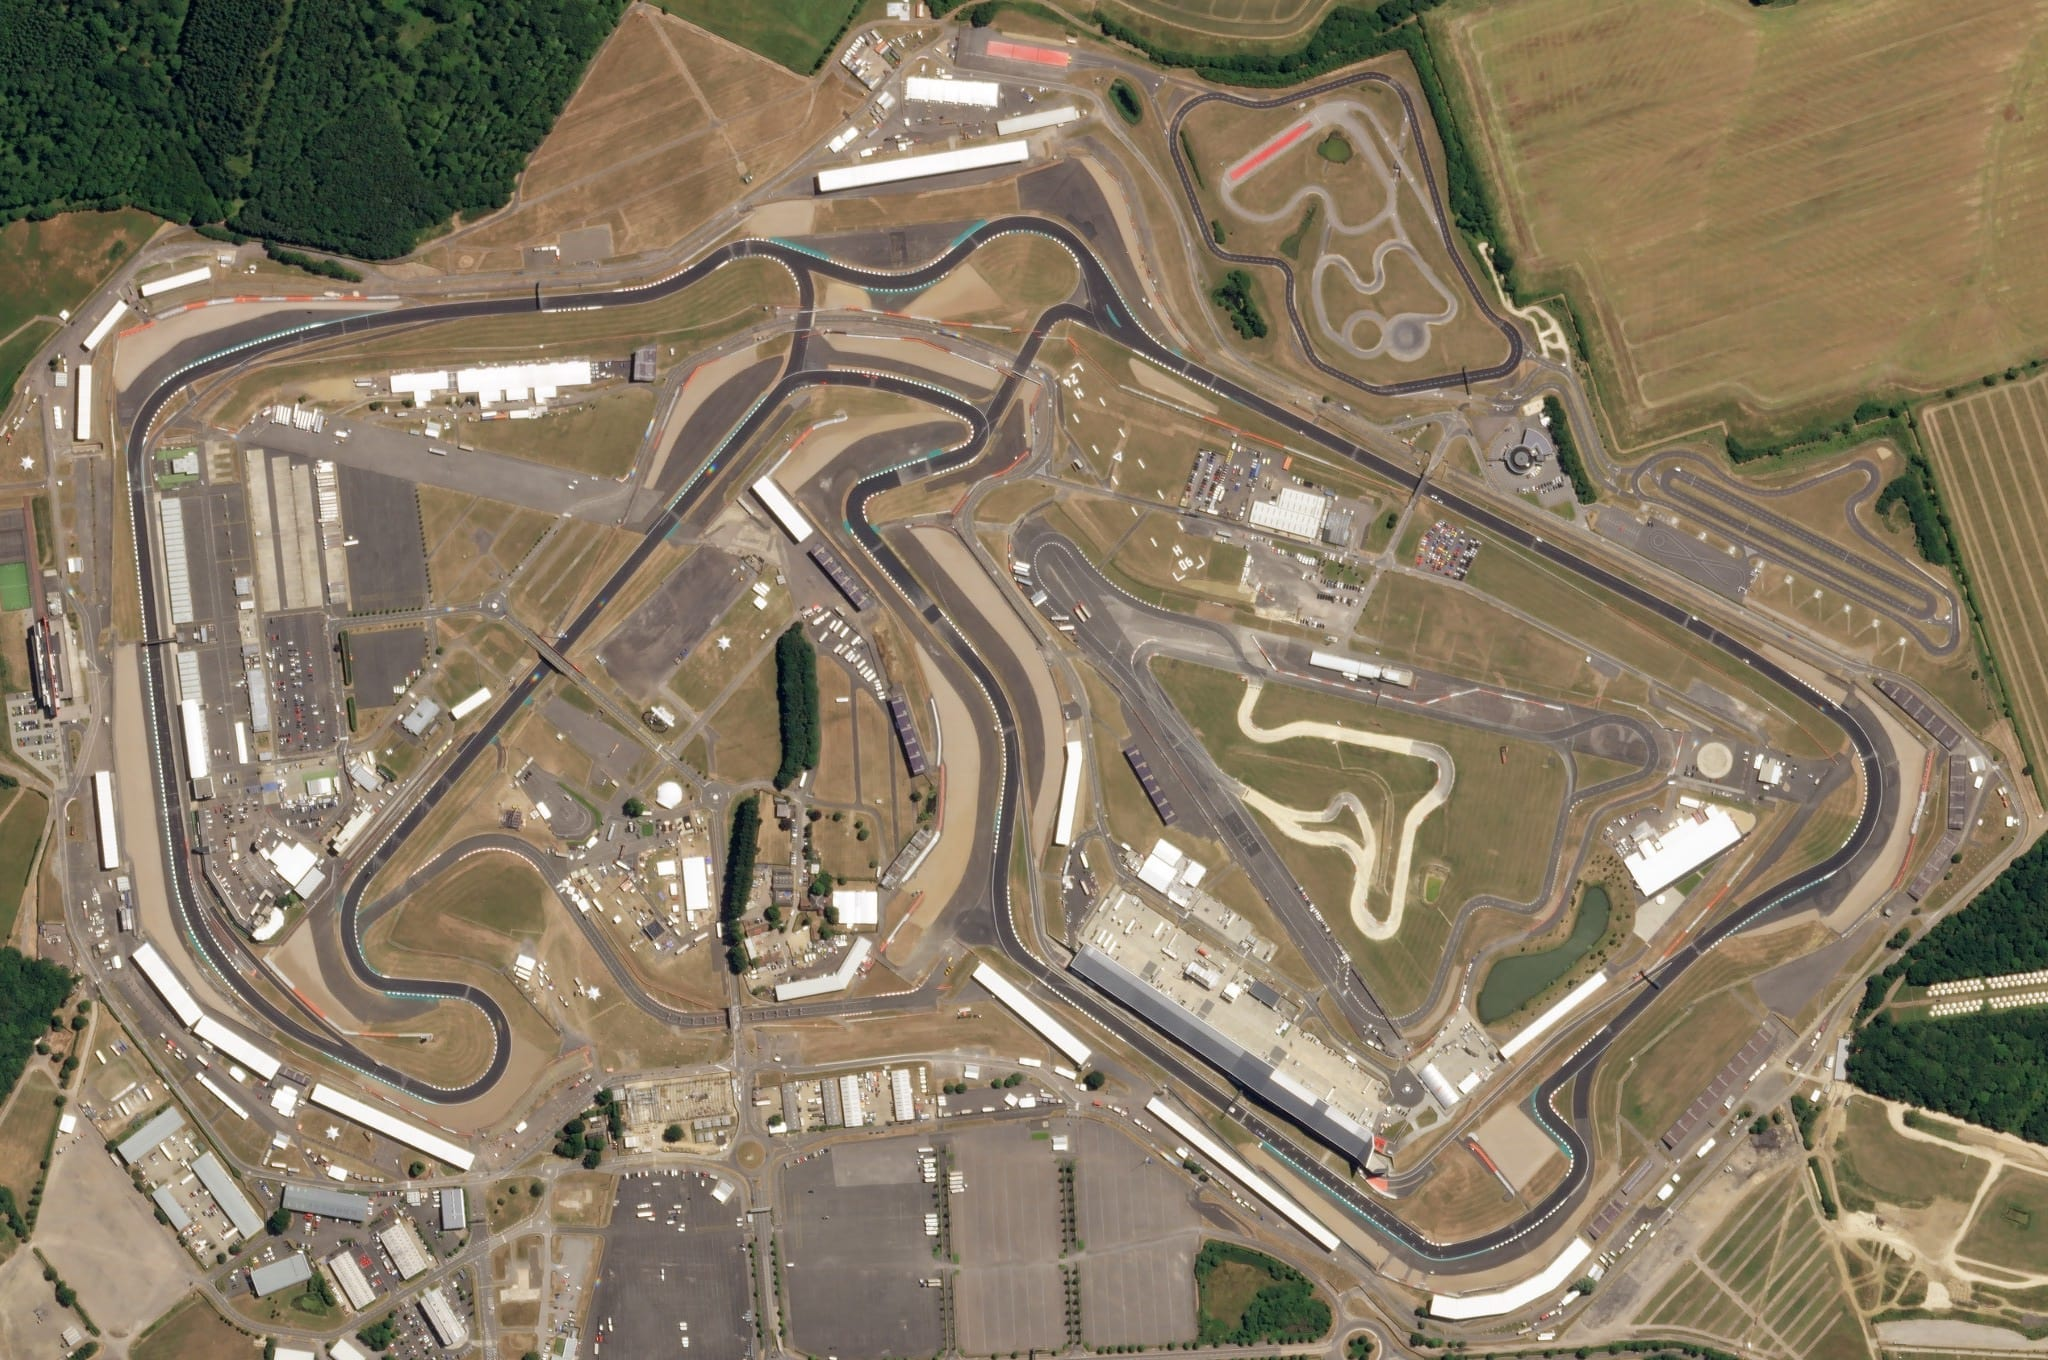 facts about Silverstone